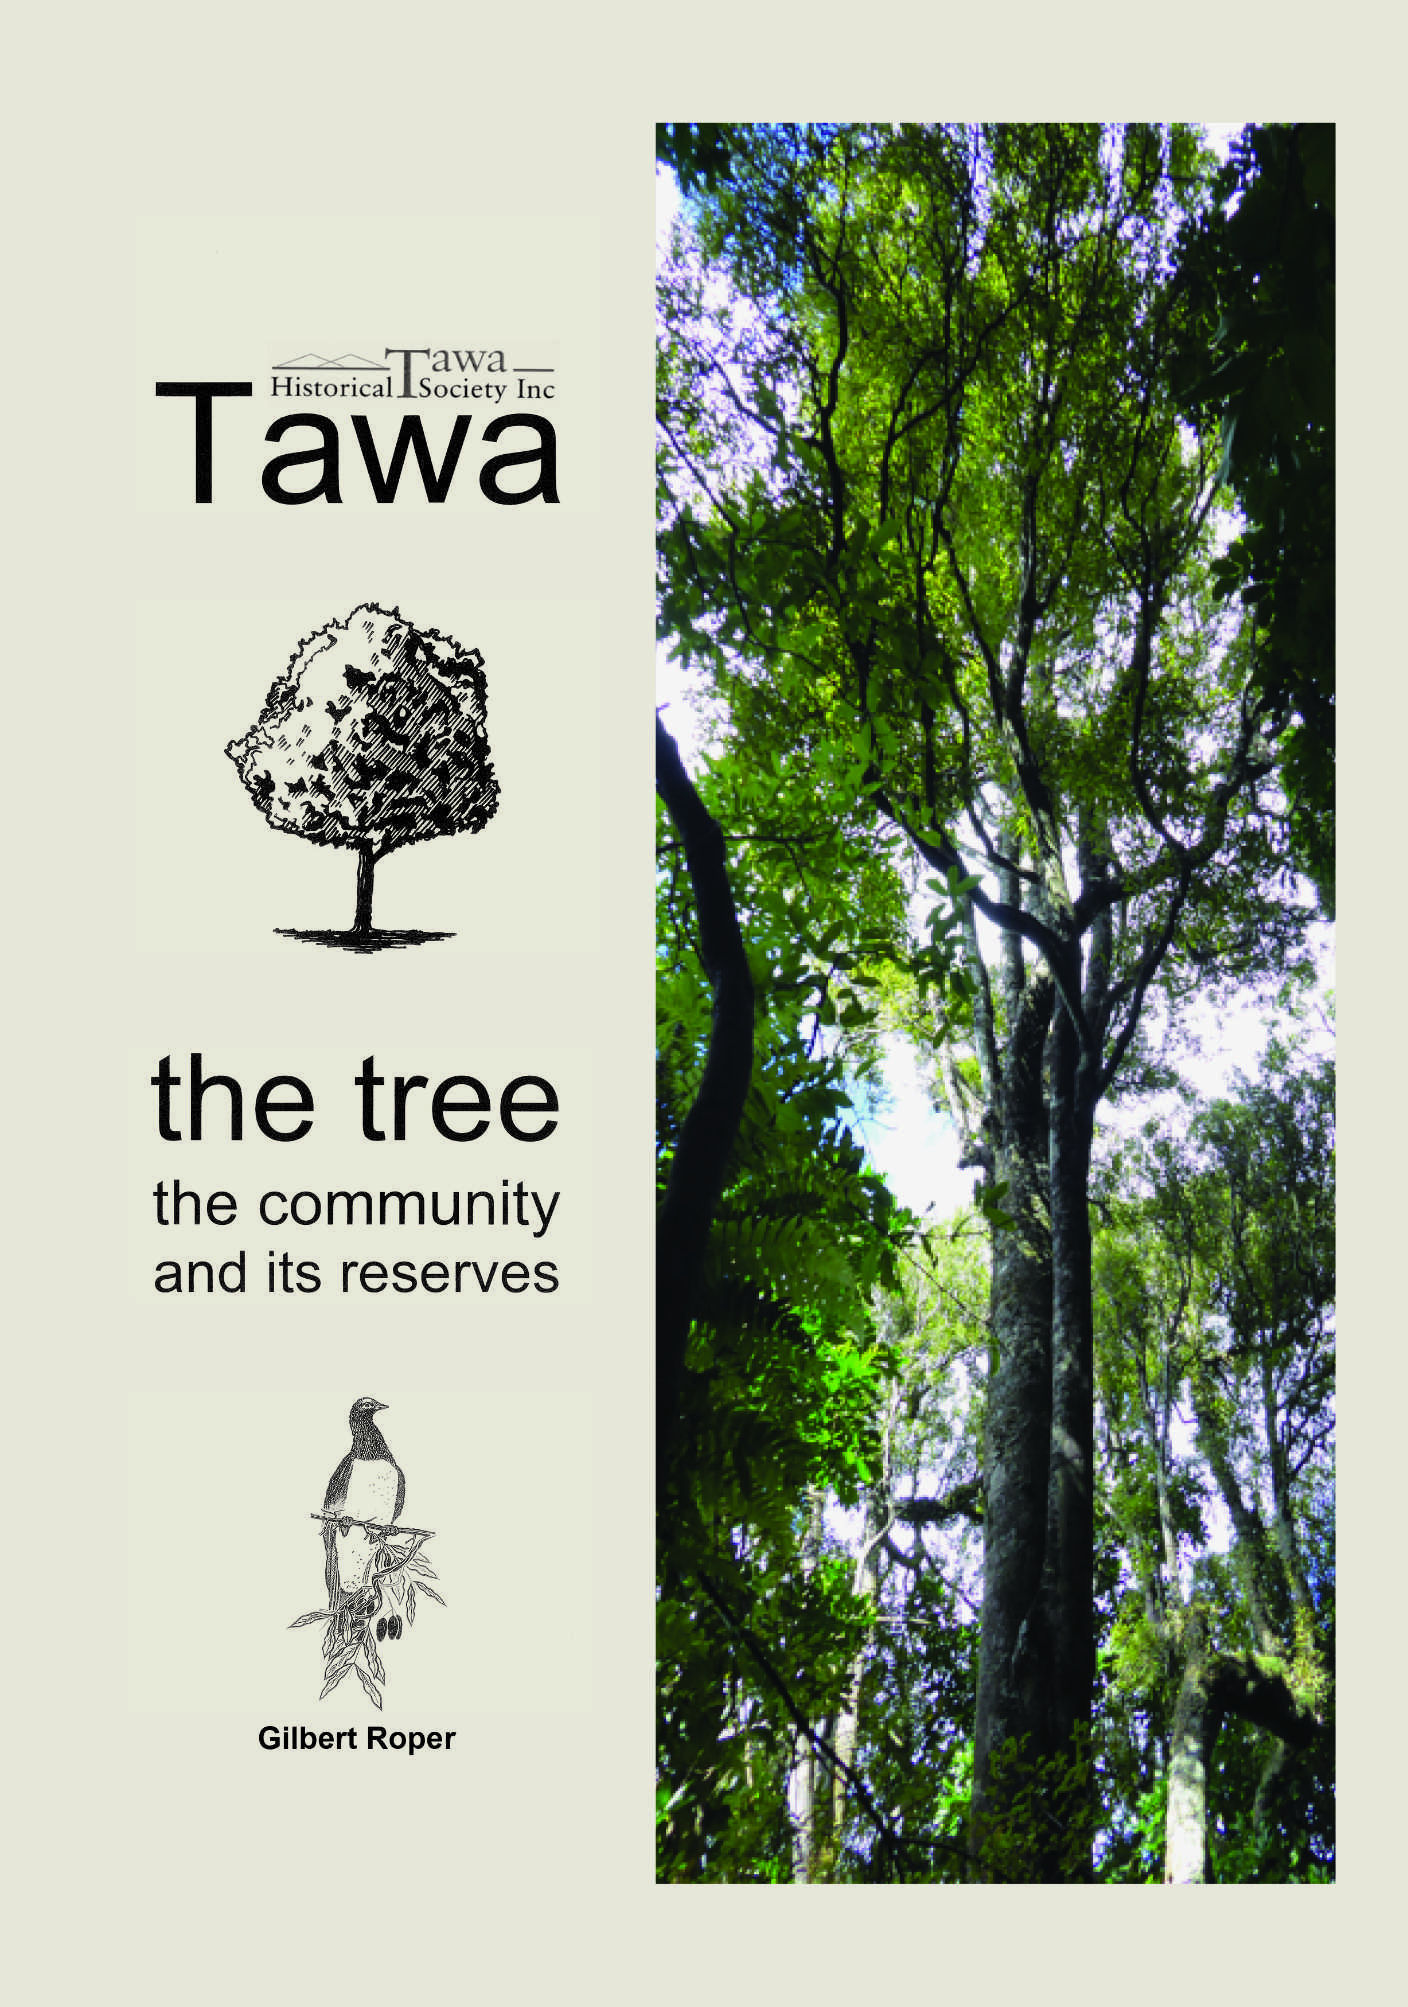 Book Tawa tree community reserves by Gil Roper